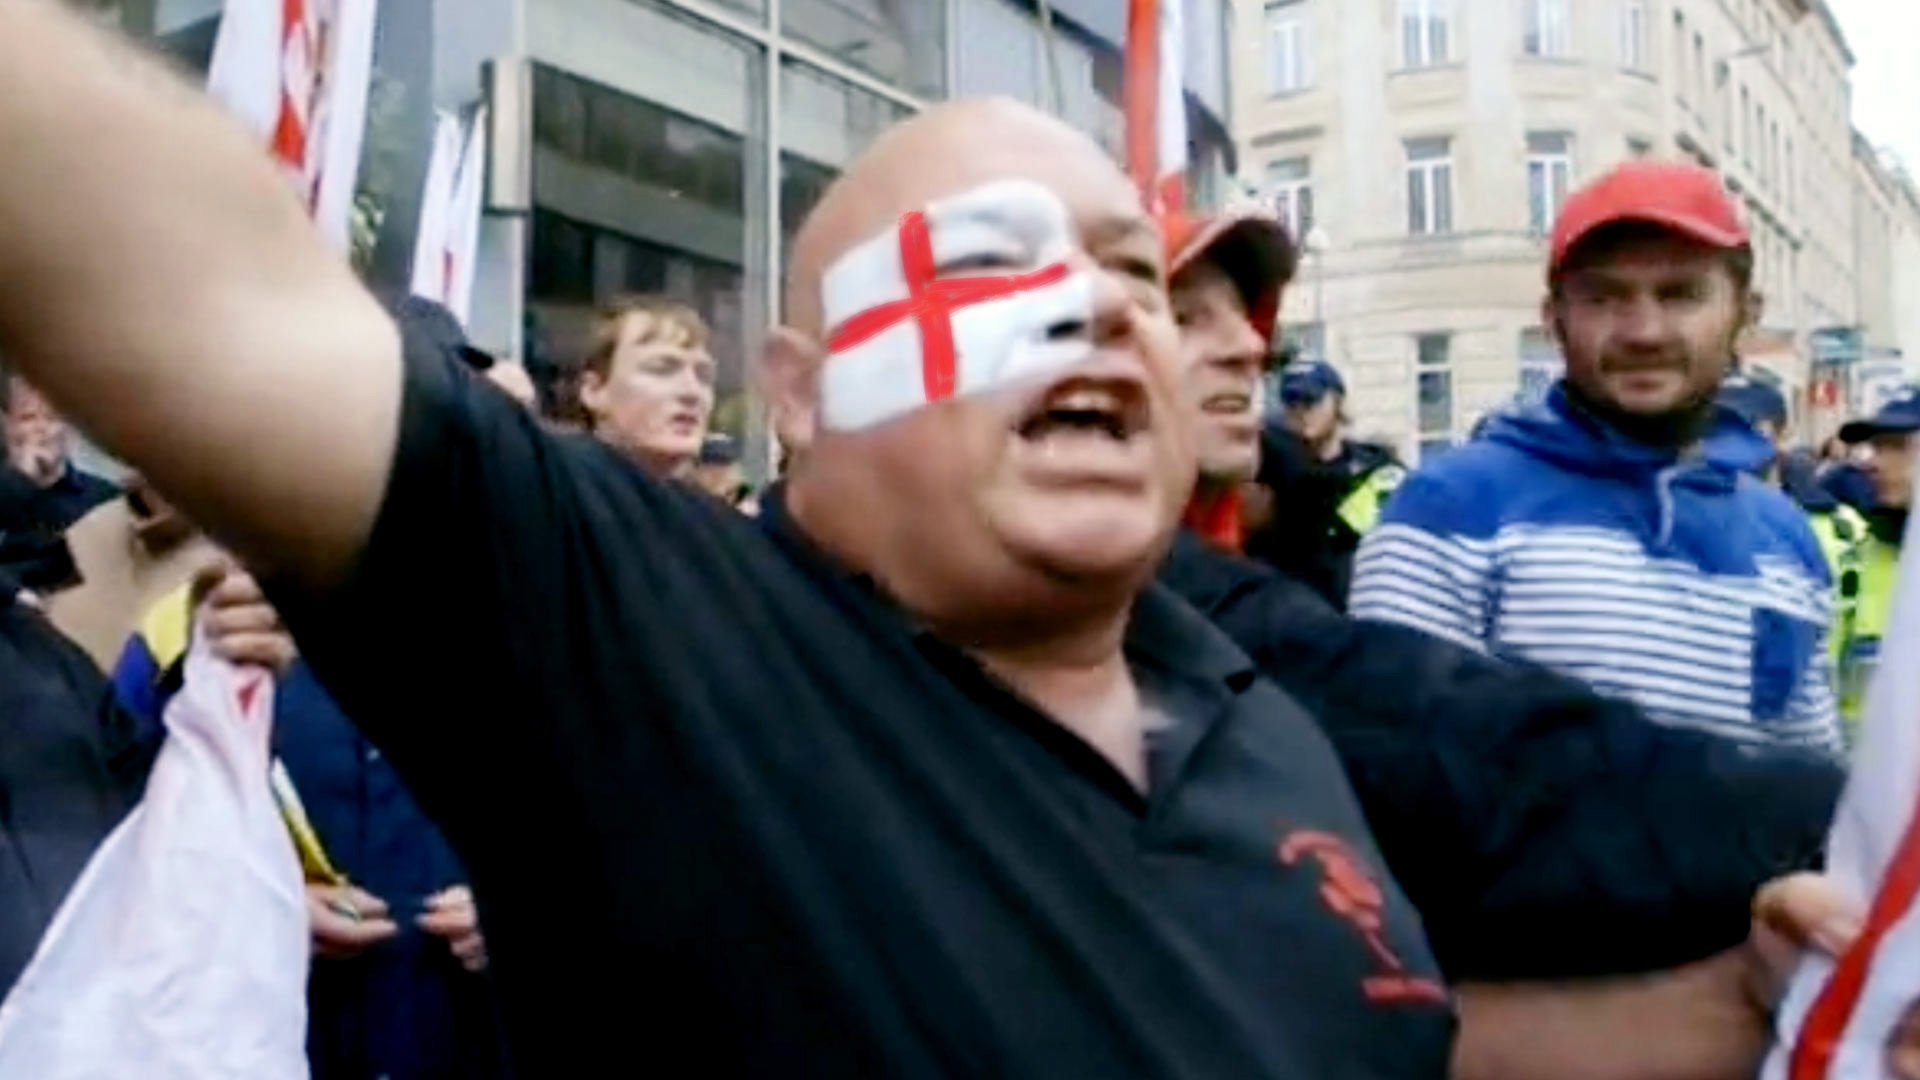 Man with English flag face paint chants